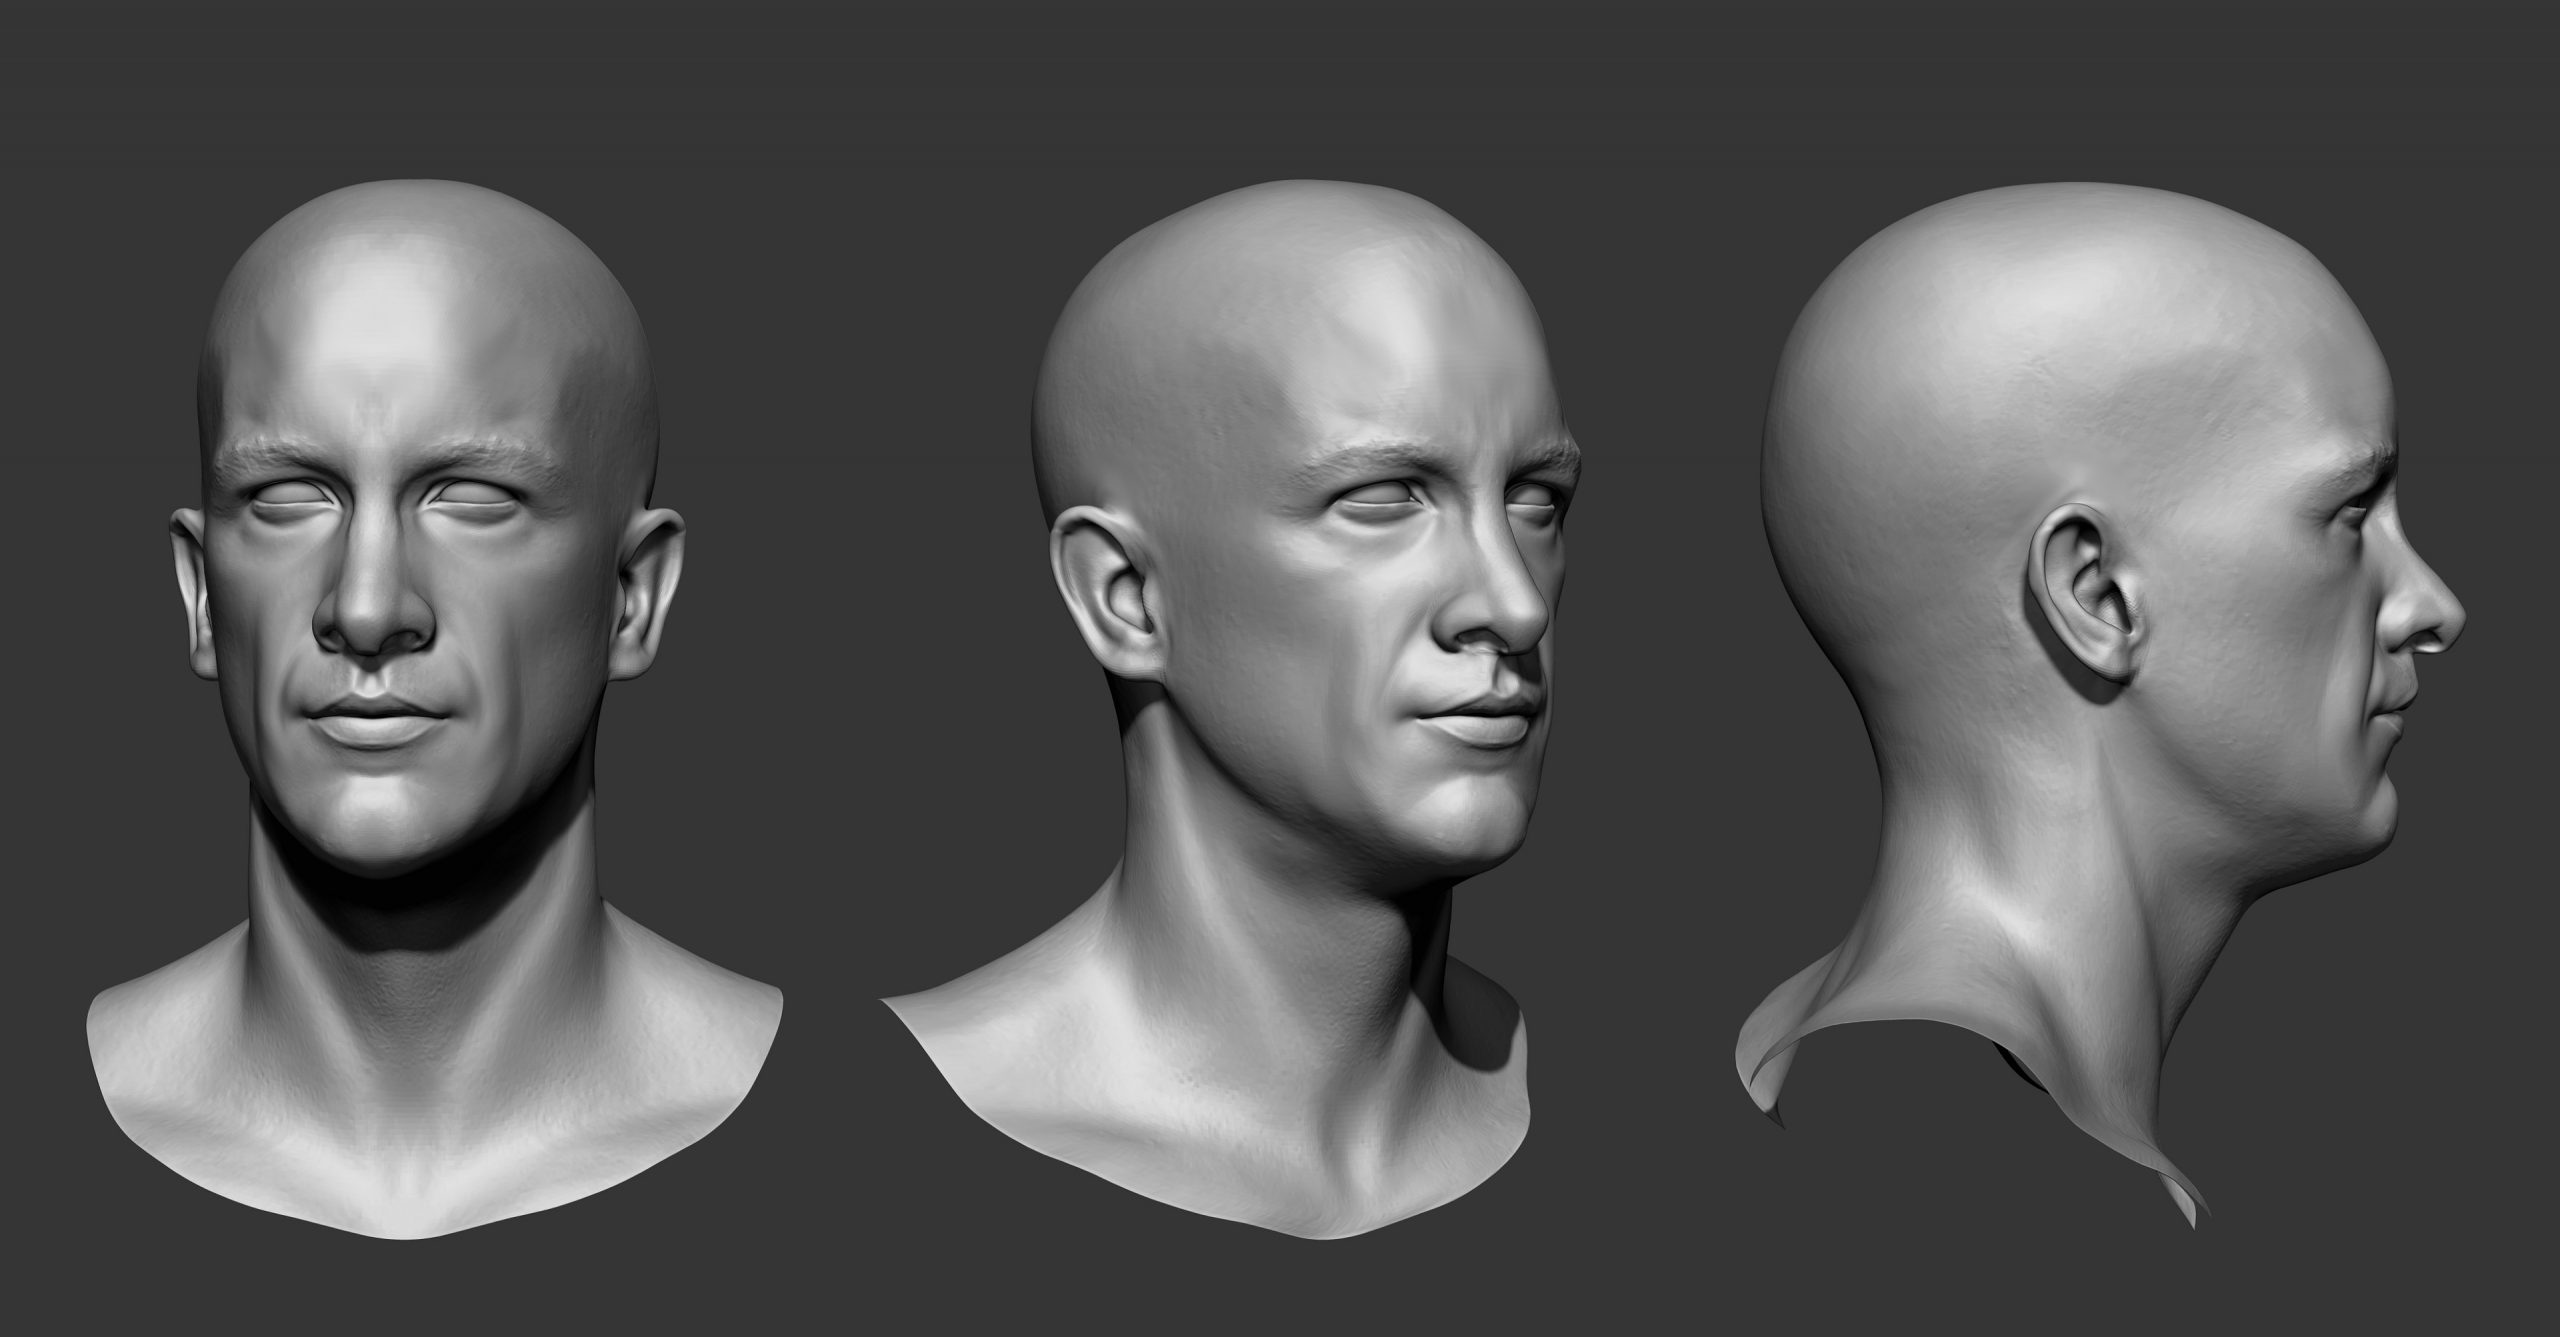 Three different photos of a sculpted head